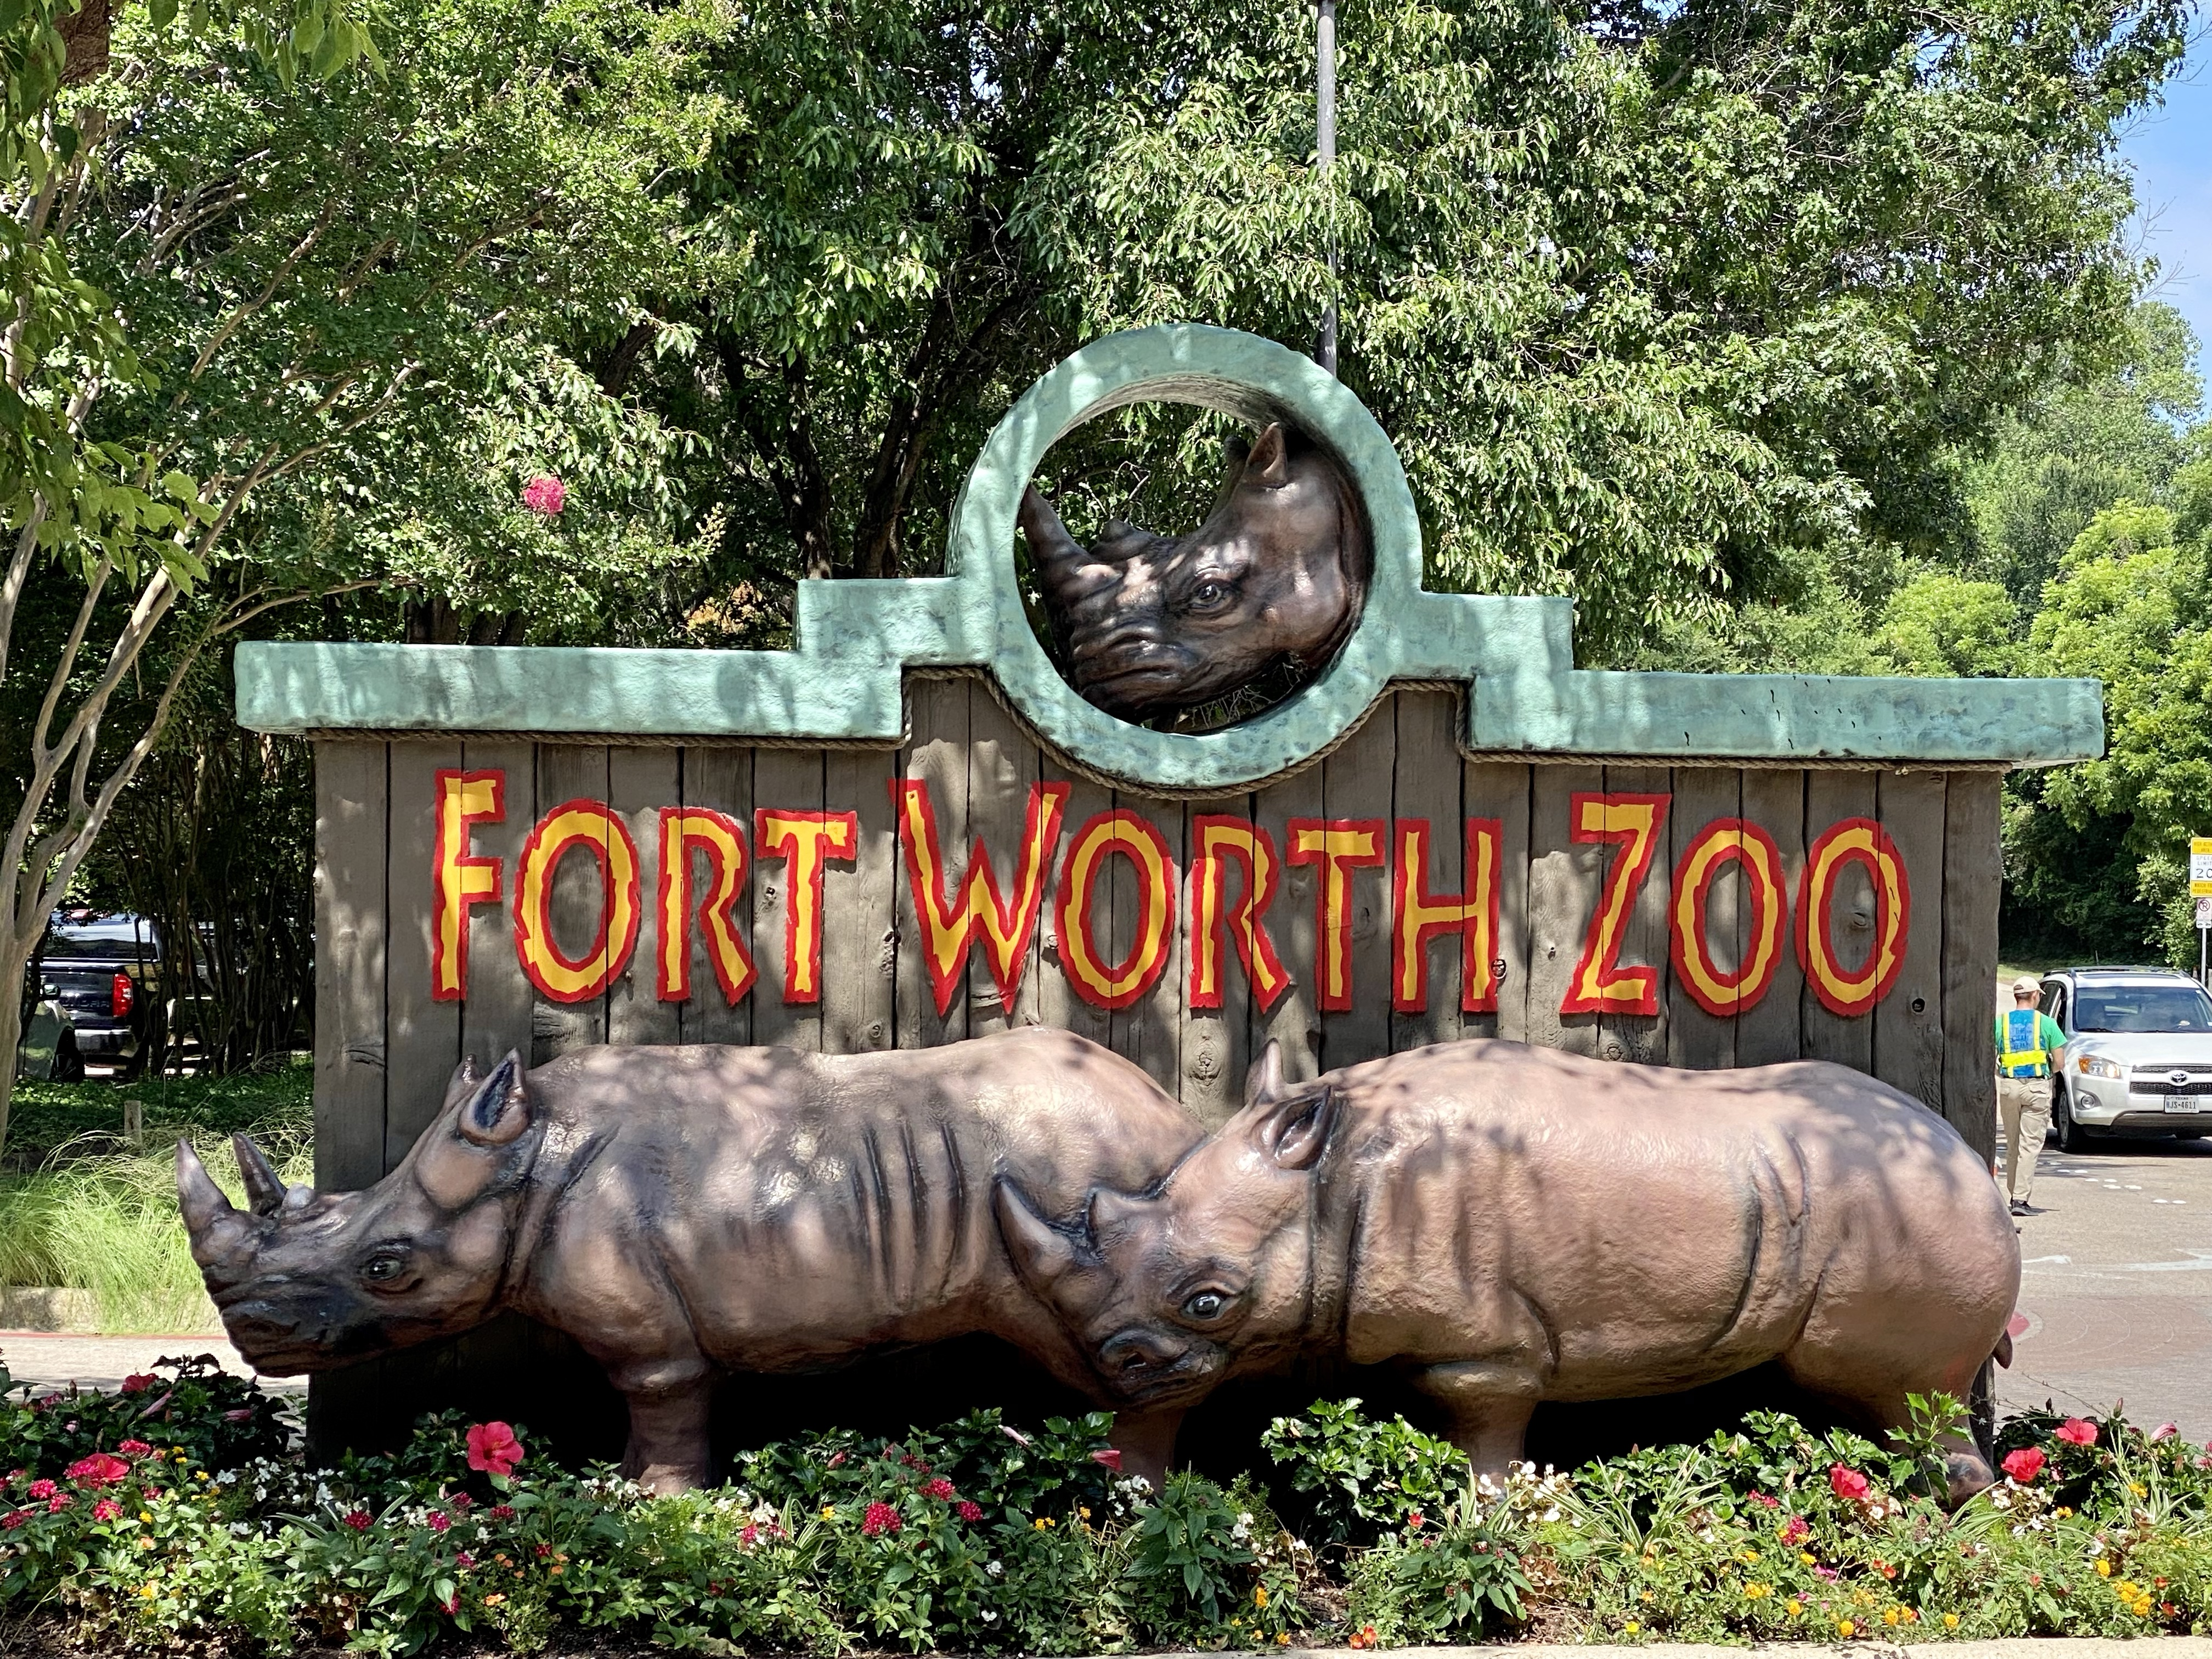 The Fort Worth Zoo Texas